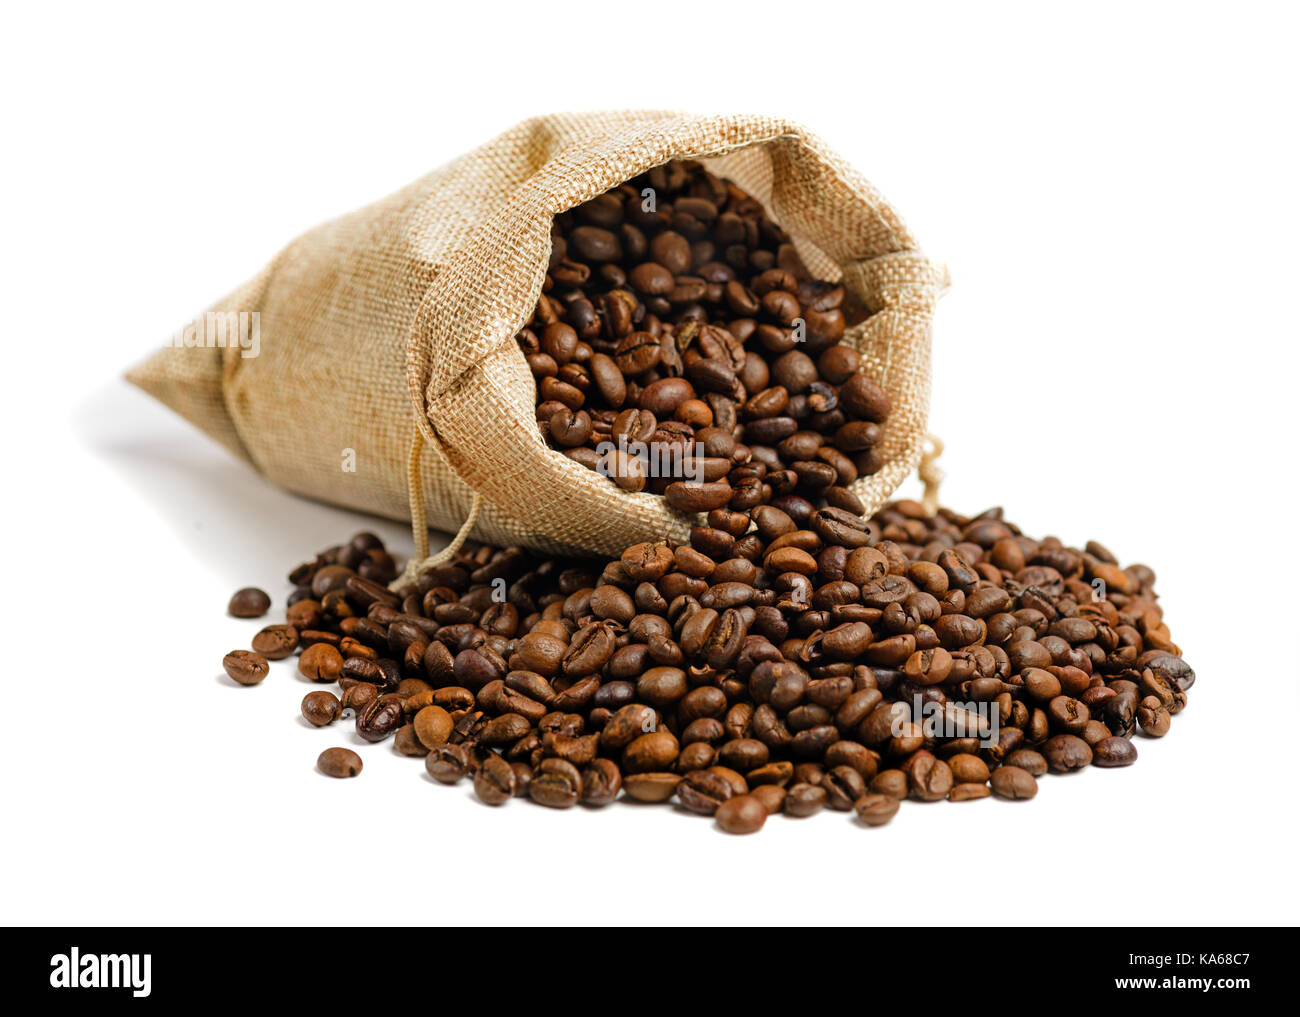 Coffee beans in jute sack  isolated on white background - Stock Image